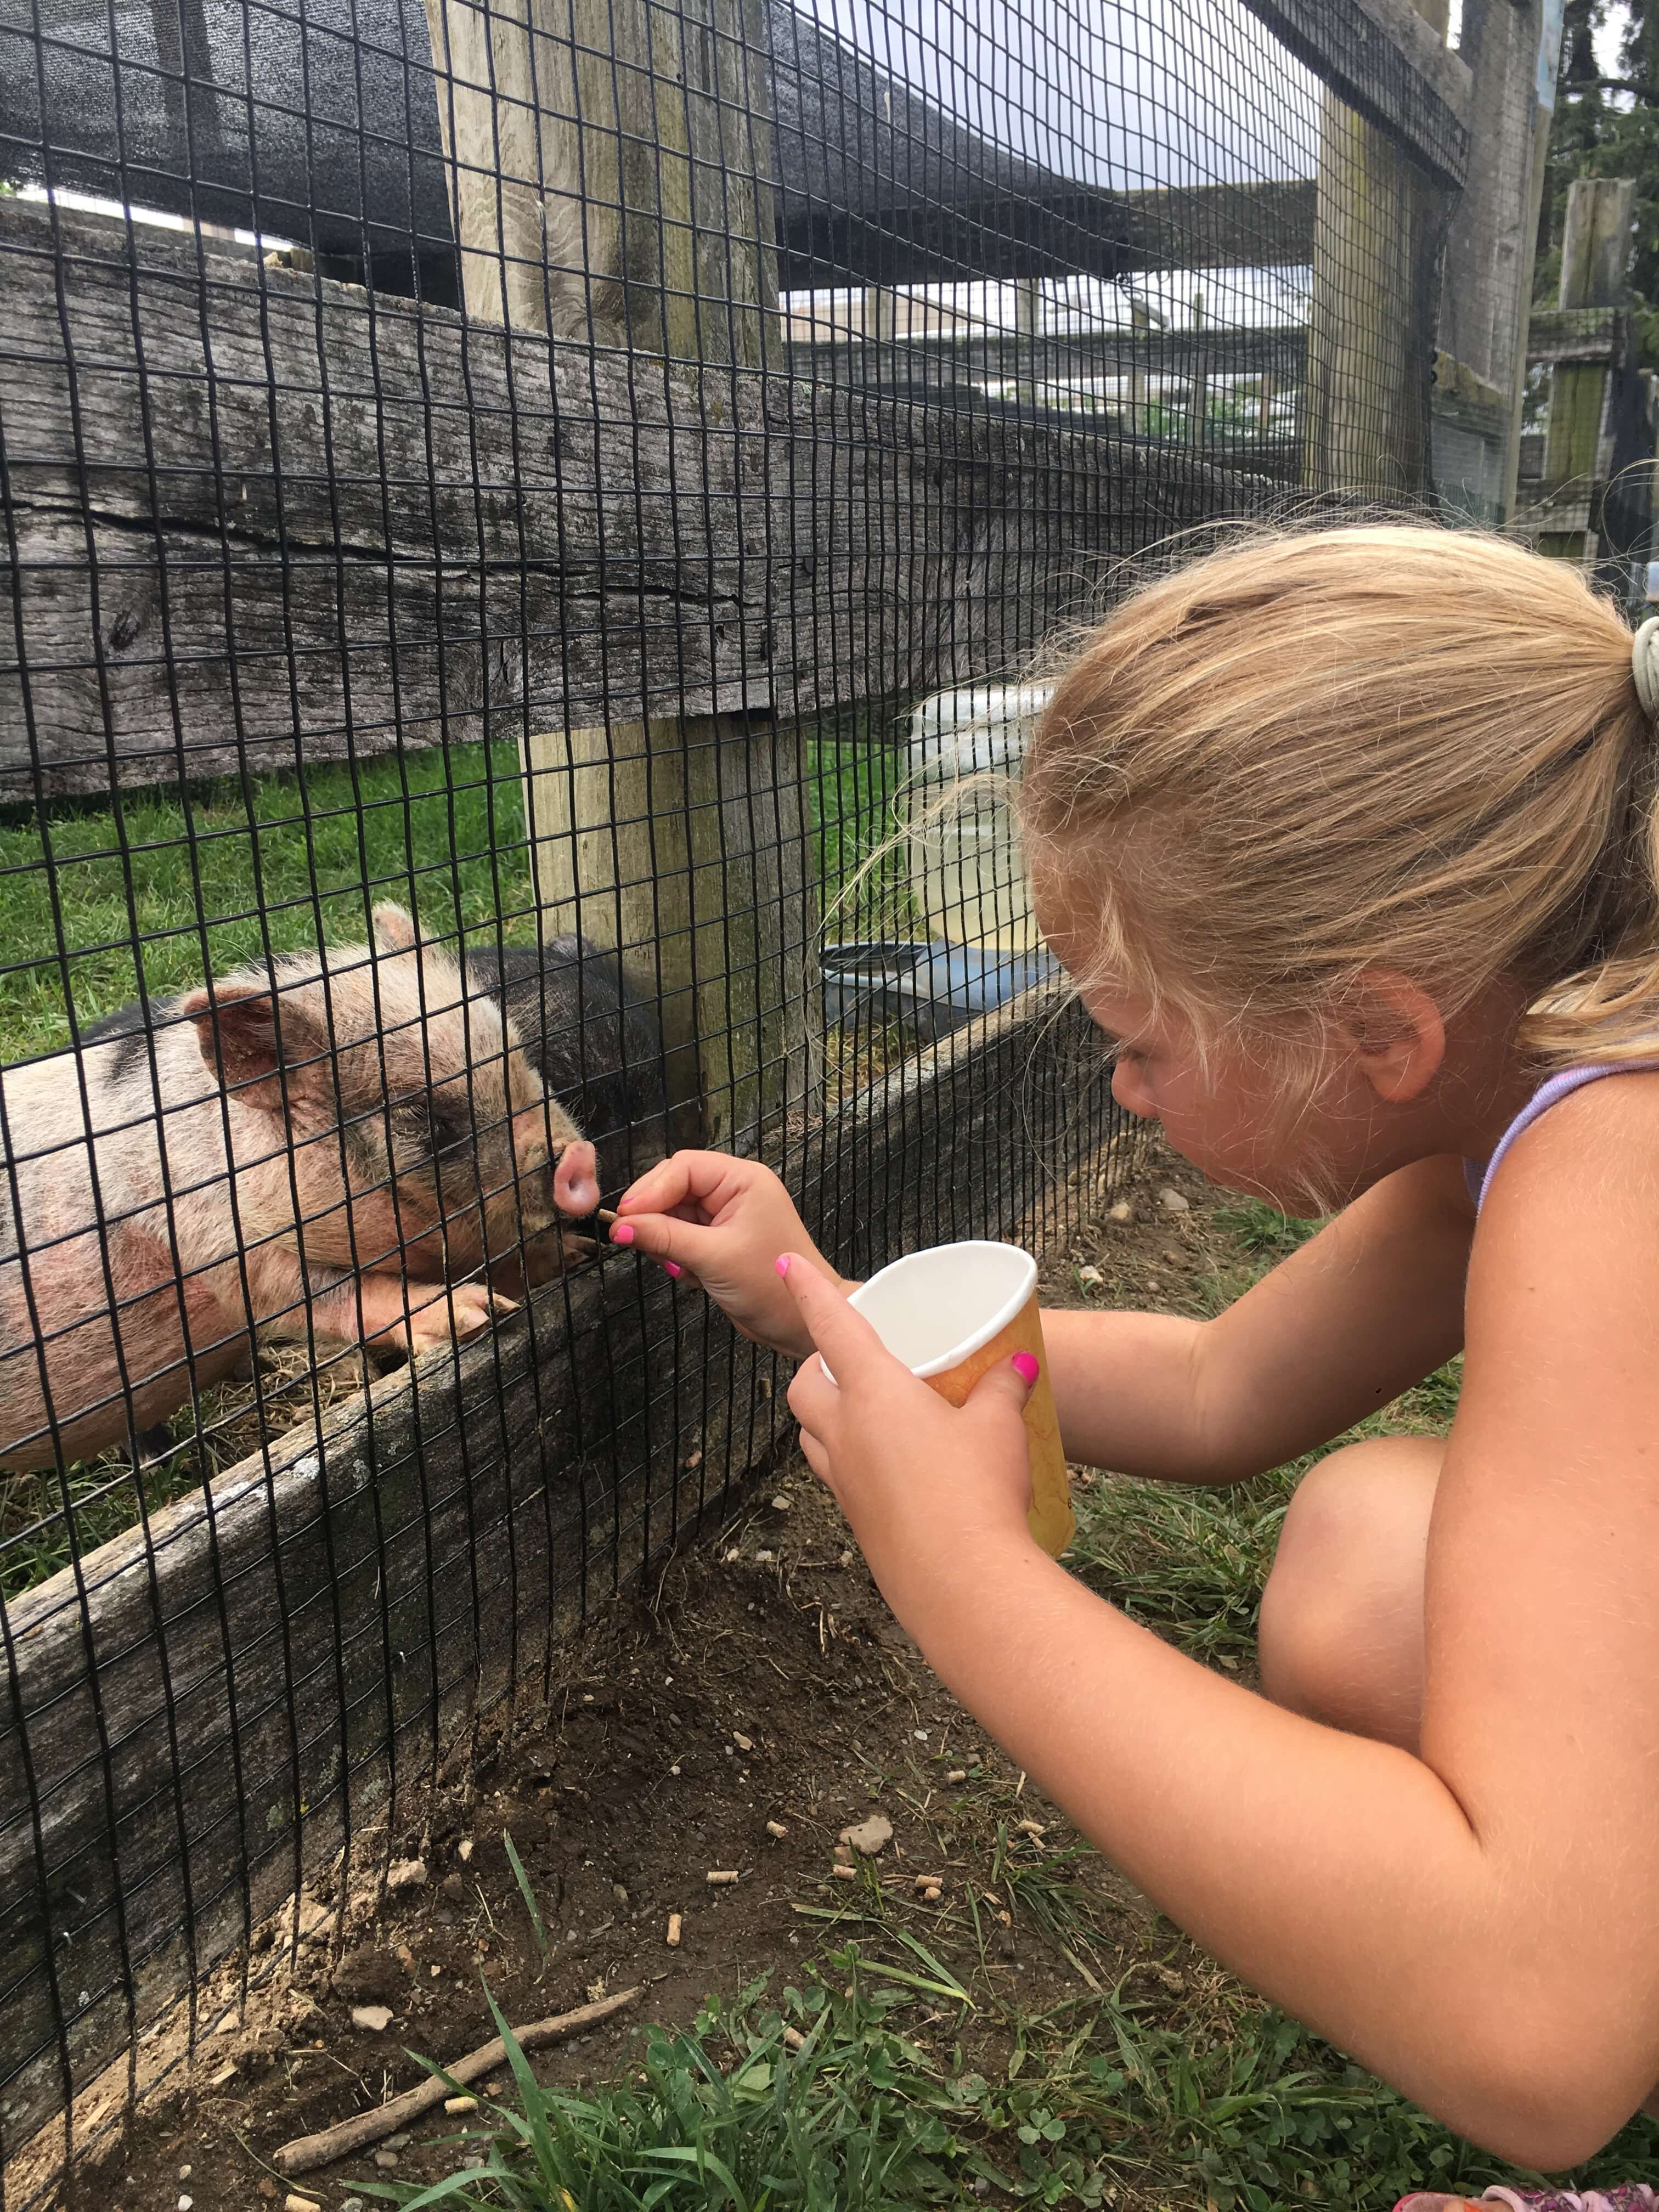 Visit to Rochambeau Farm feed pigs